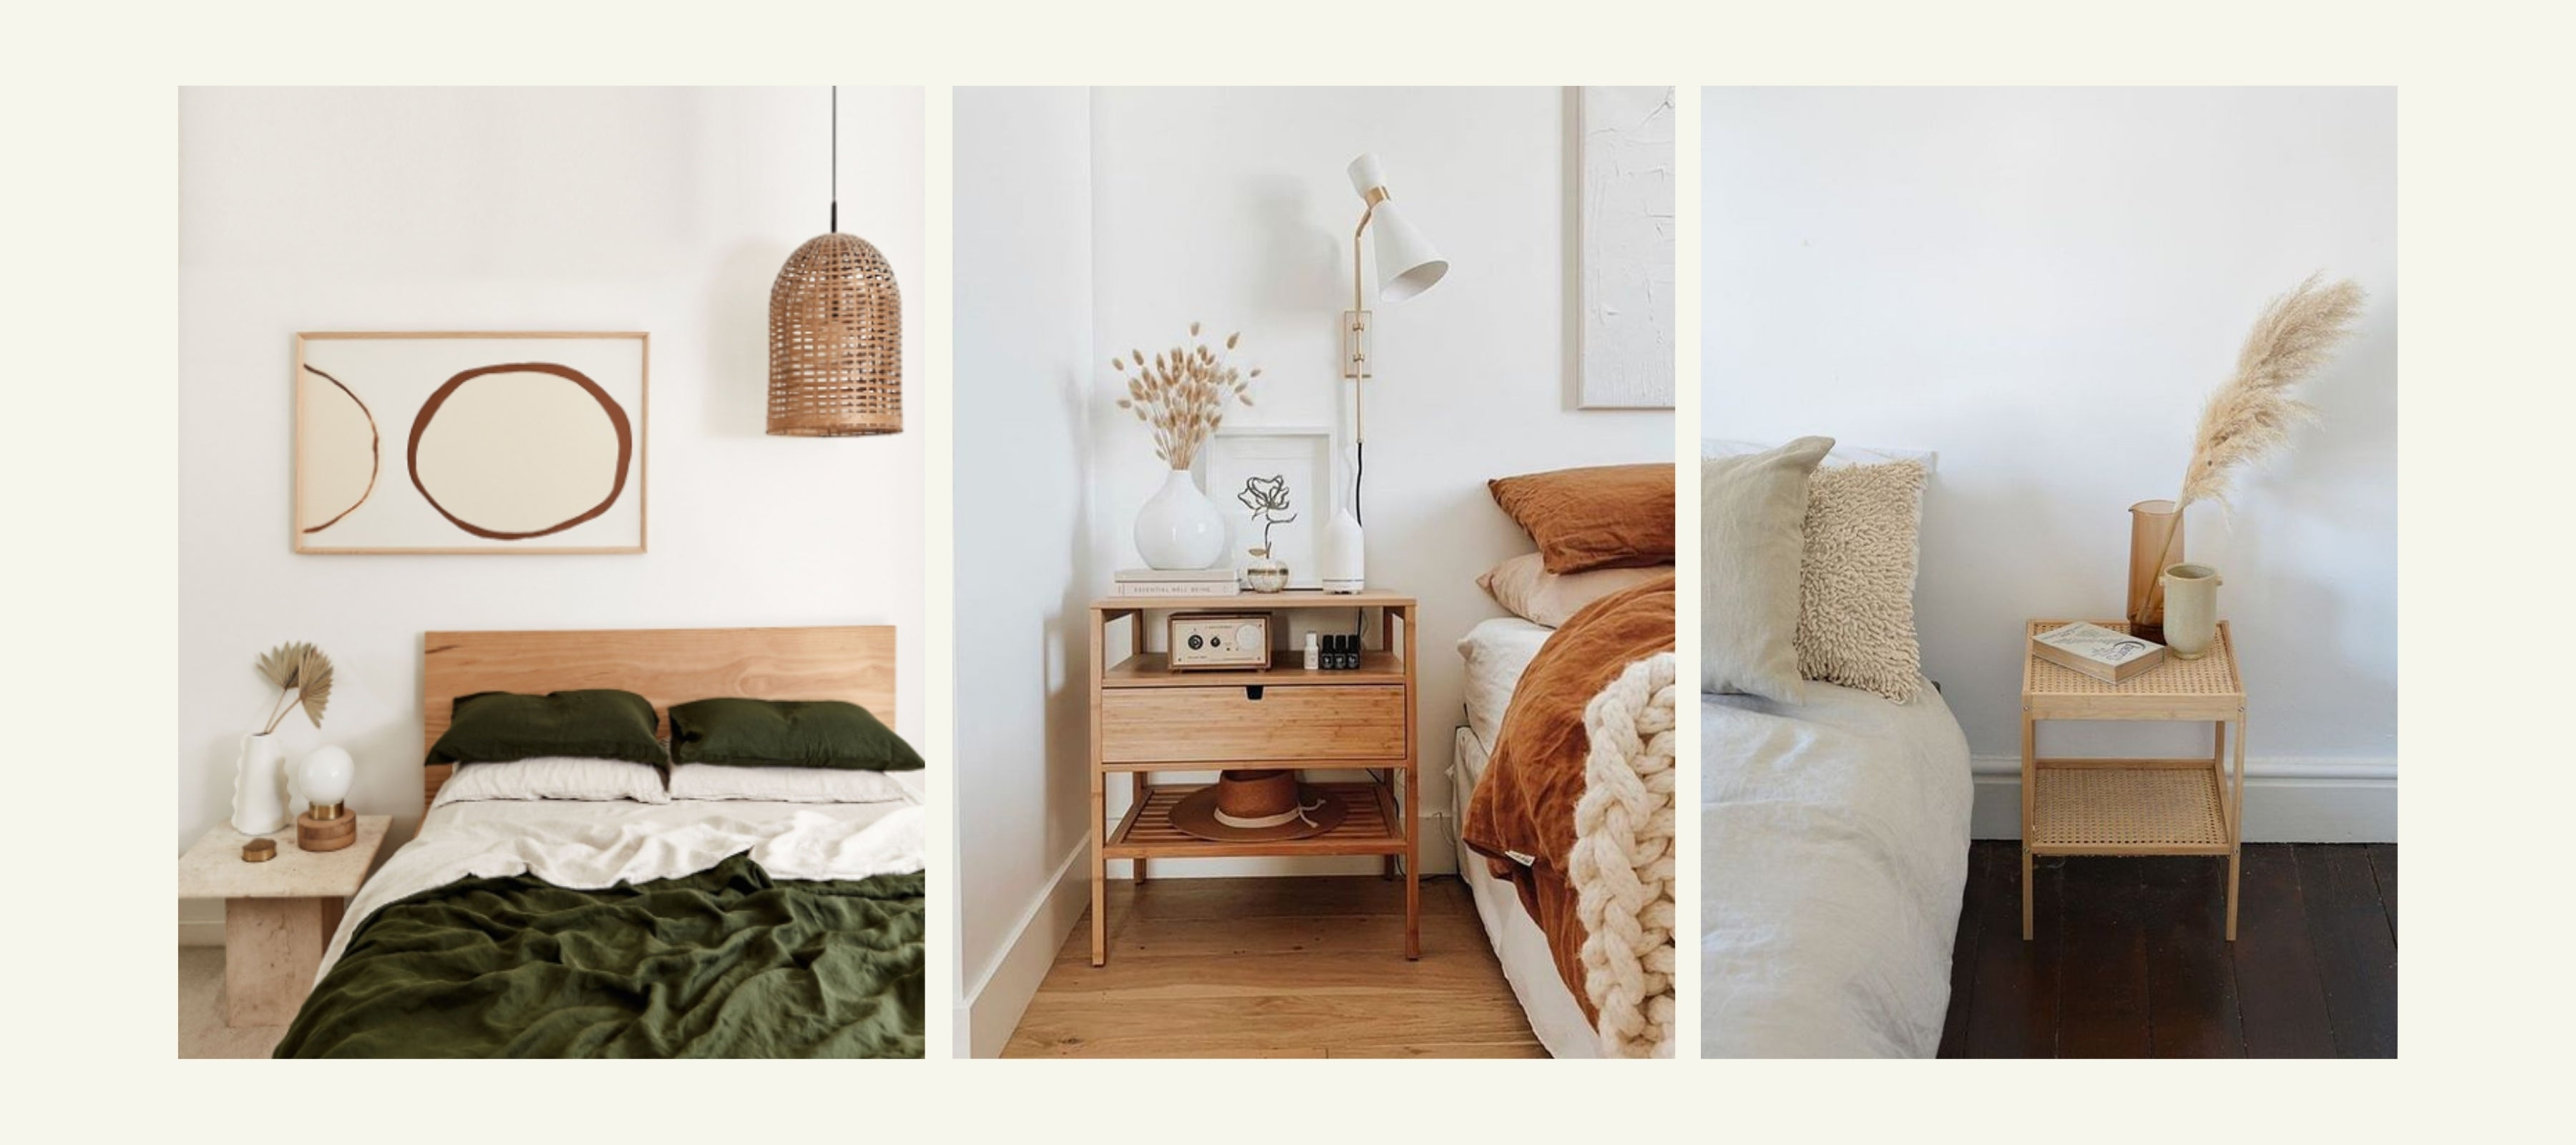 How to Make Your Room Look Good Without a Bed Frame with Bedside Table